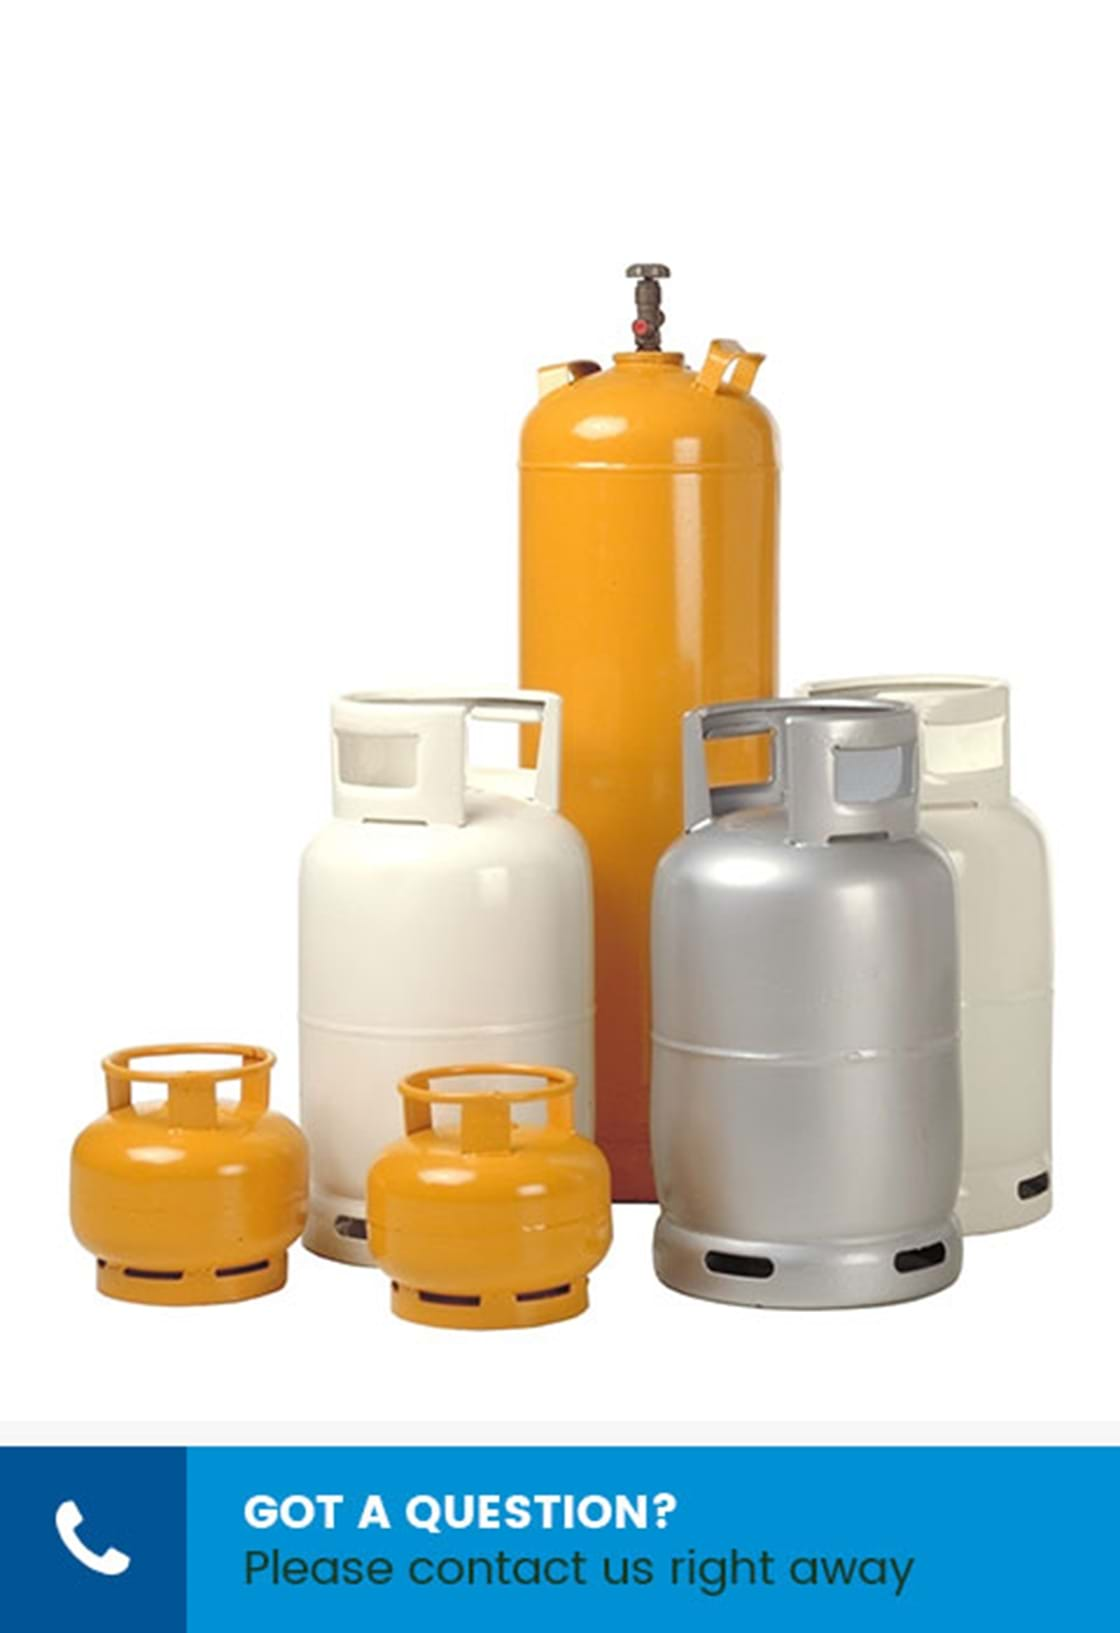 image of clean new painted LPG cylinders